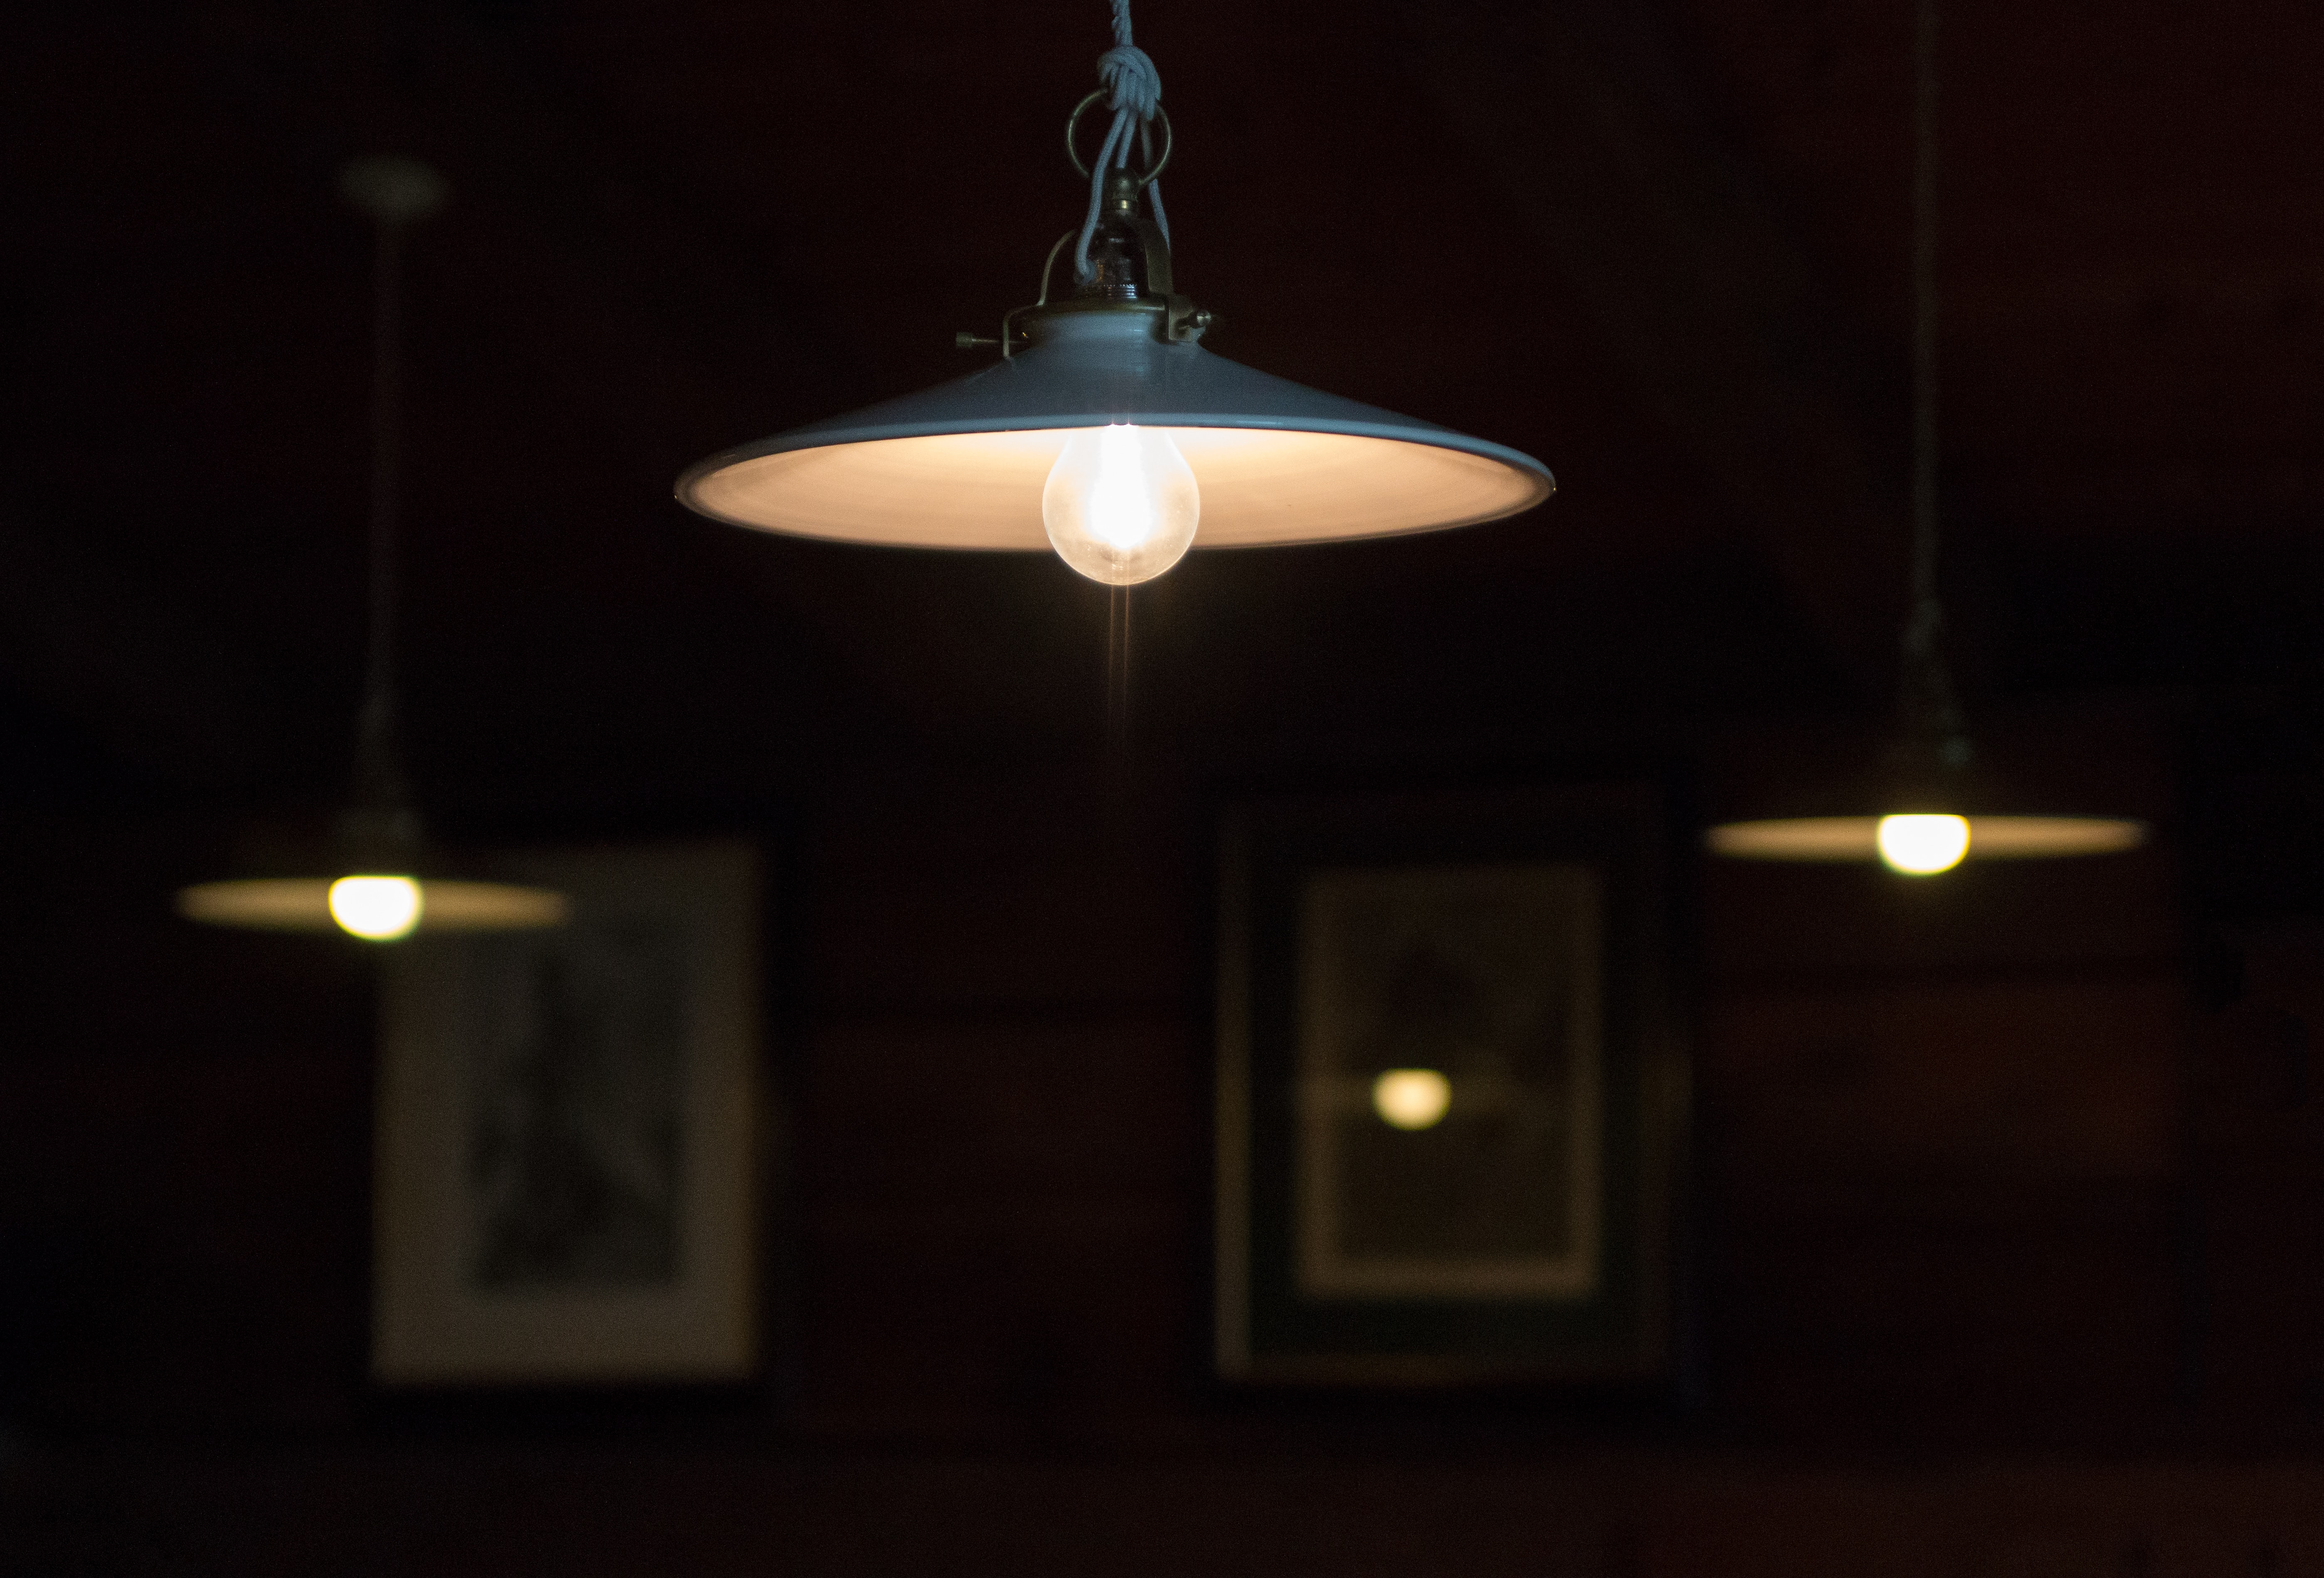 Industrial lamps hang from a ceiling in a living room